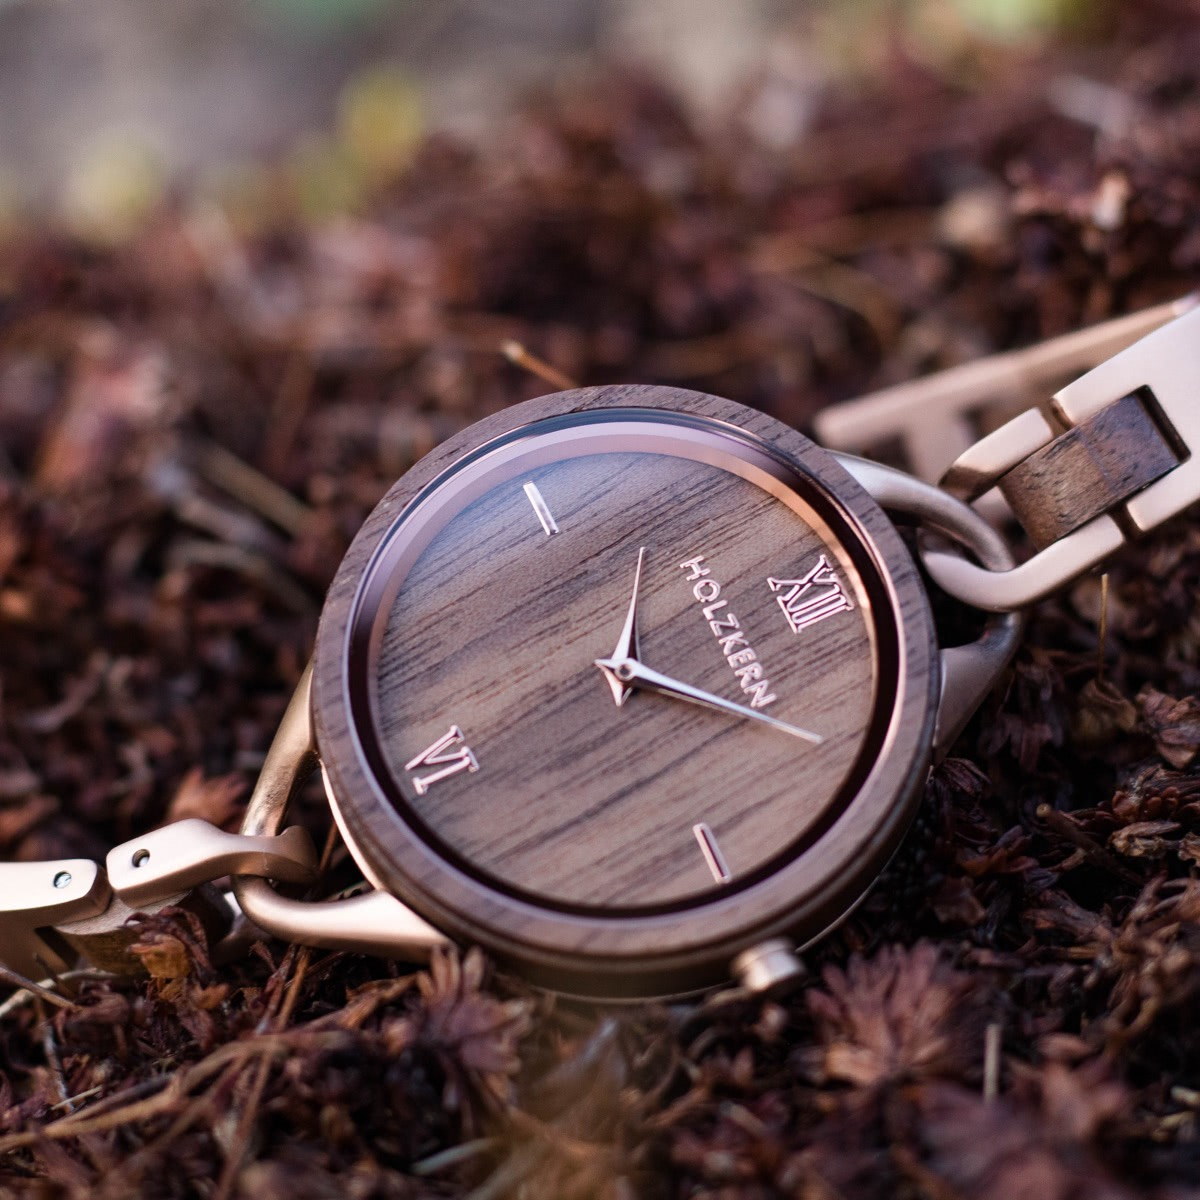 Silk Fiber is a wood watch made by Holzkern